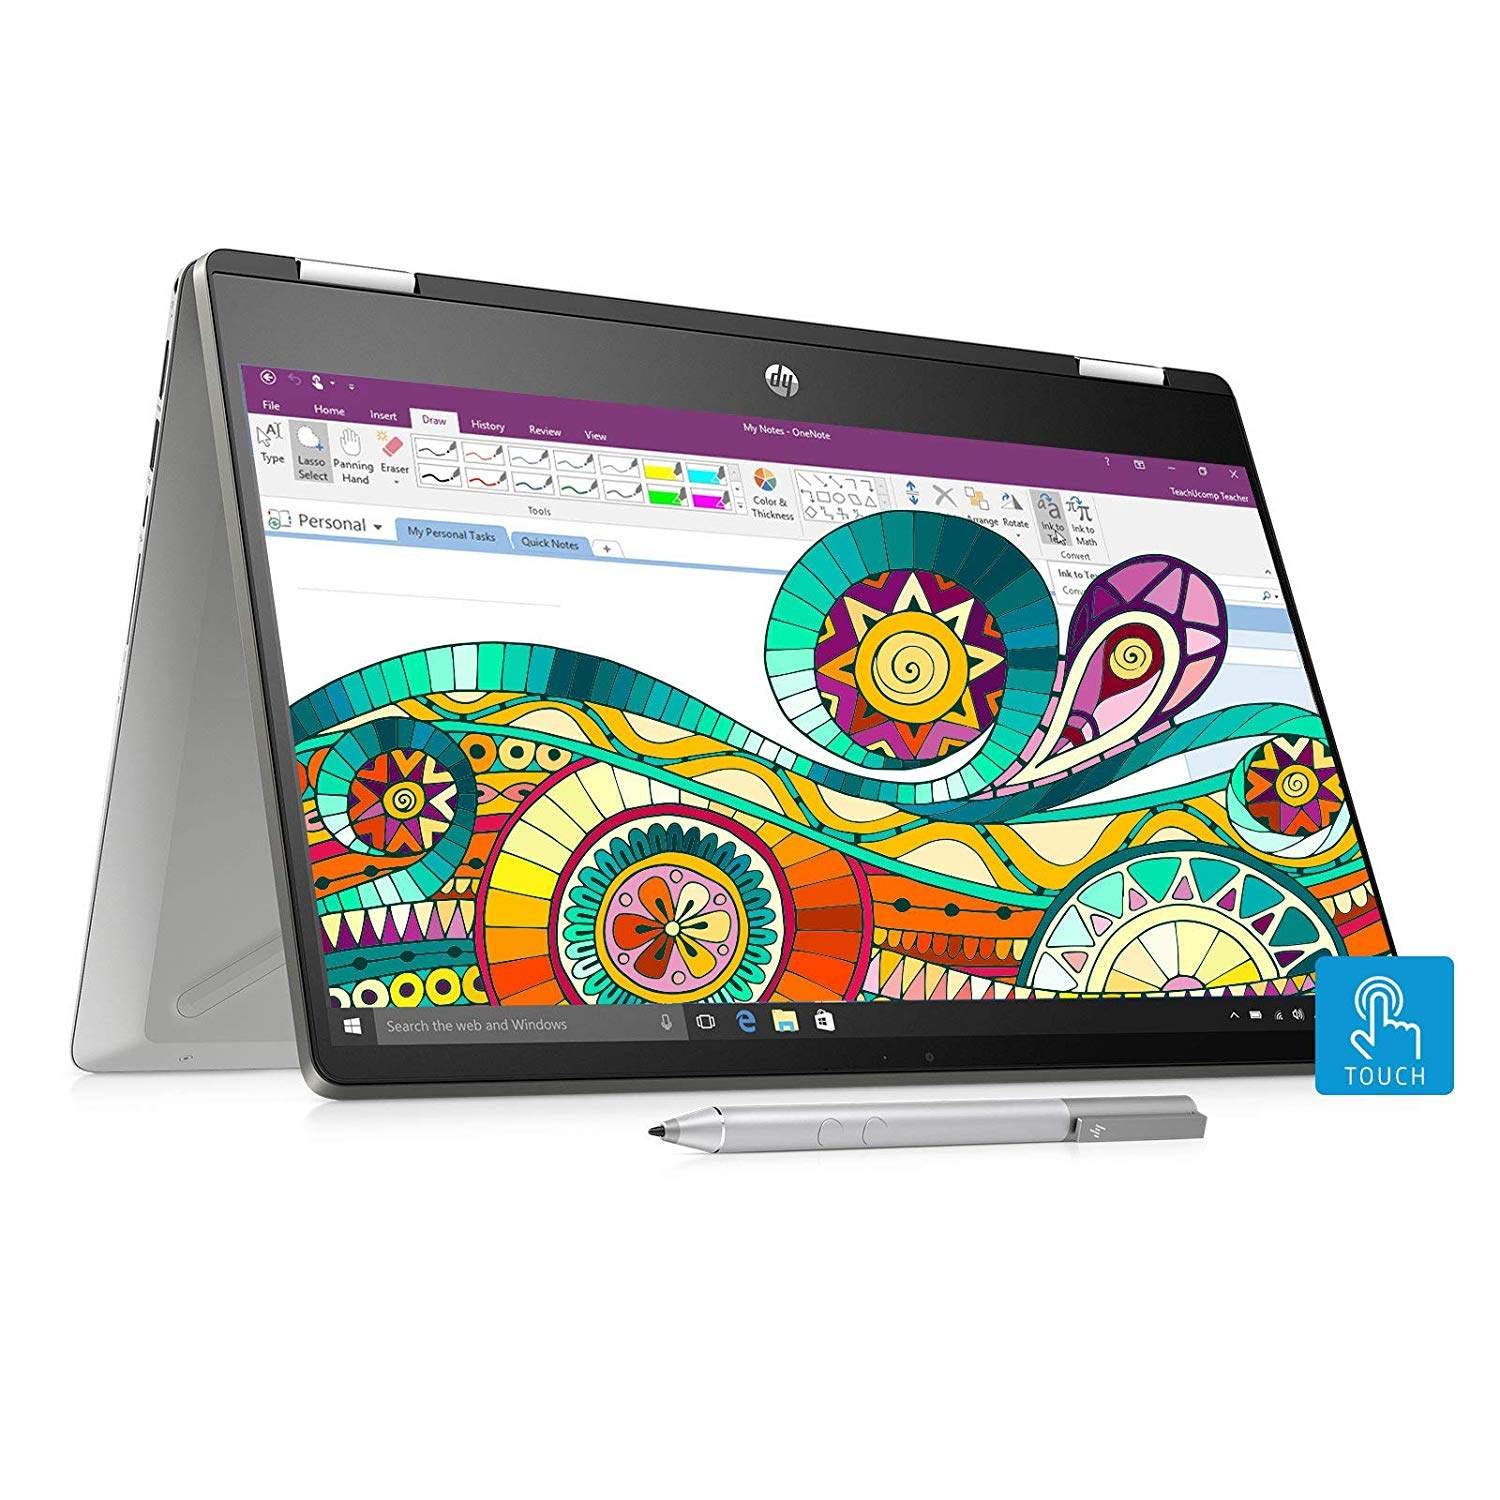 Buy Hp Pavilion X360 14 Dh0107tu Core I3 8th Gen 14 Inch Touchscreen 2 In 1 Thin And Light Laptop 4gb 256gb Ssd Windows 10 Ms Office Inking Pen Natural Silver Features Price Reviews Online In India Justdial